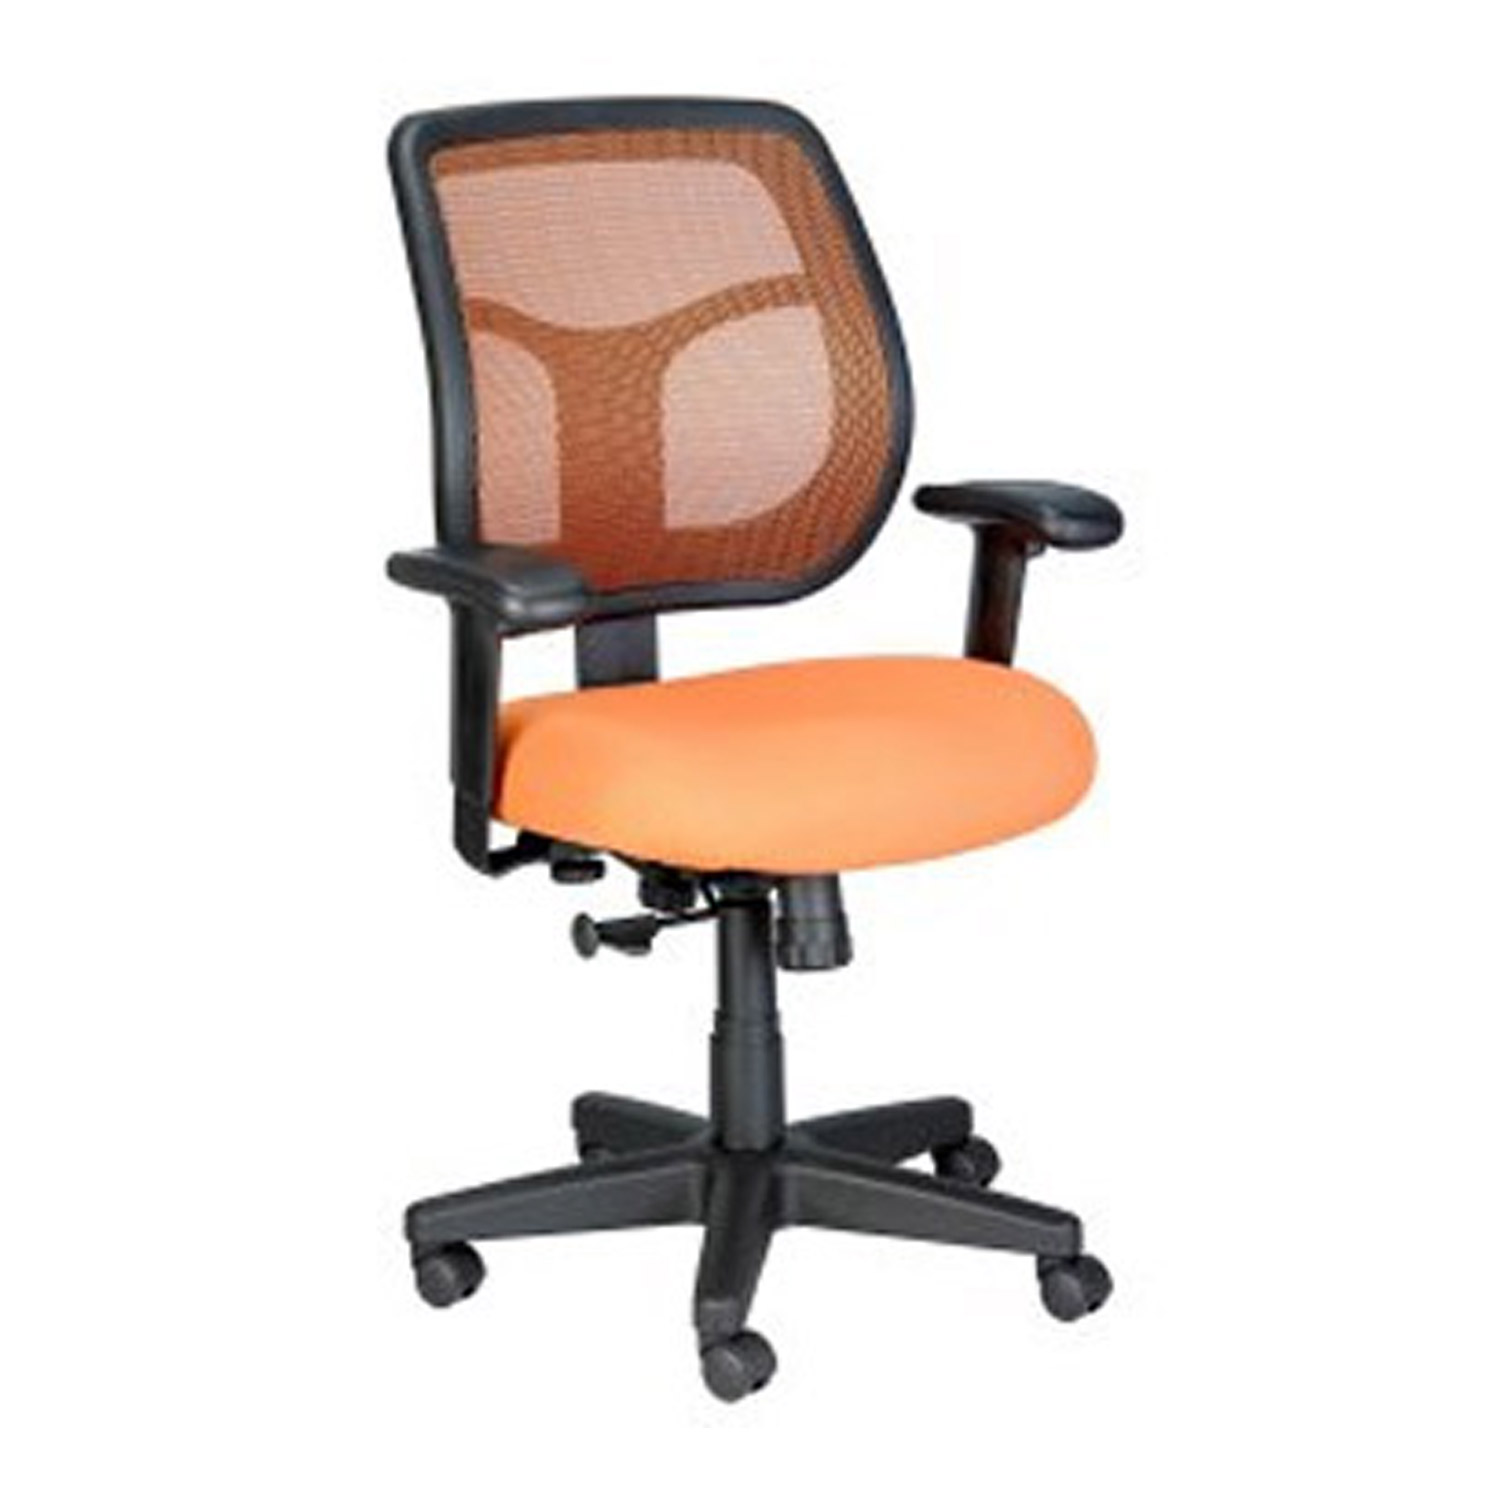 ergonomic computer chairs office desk chairs office